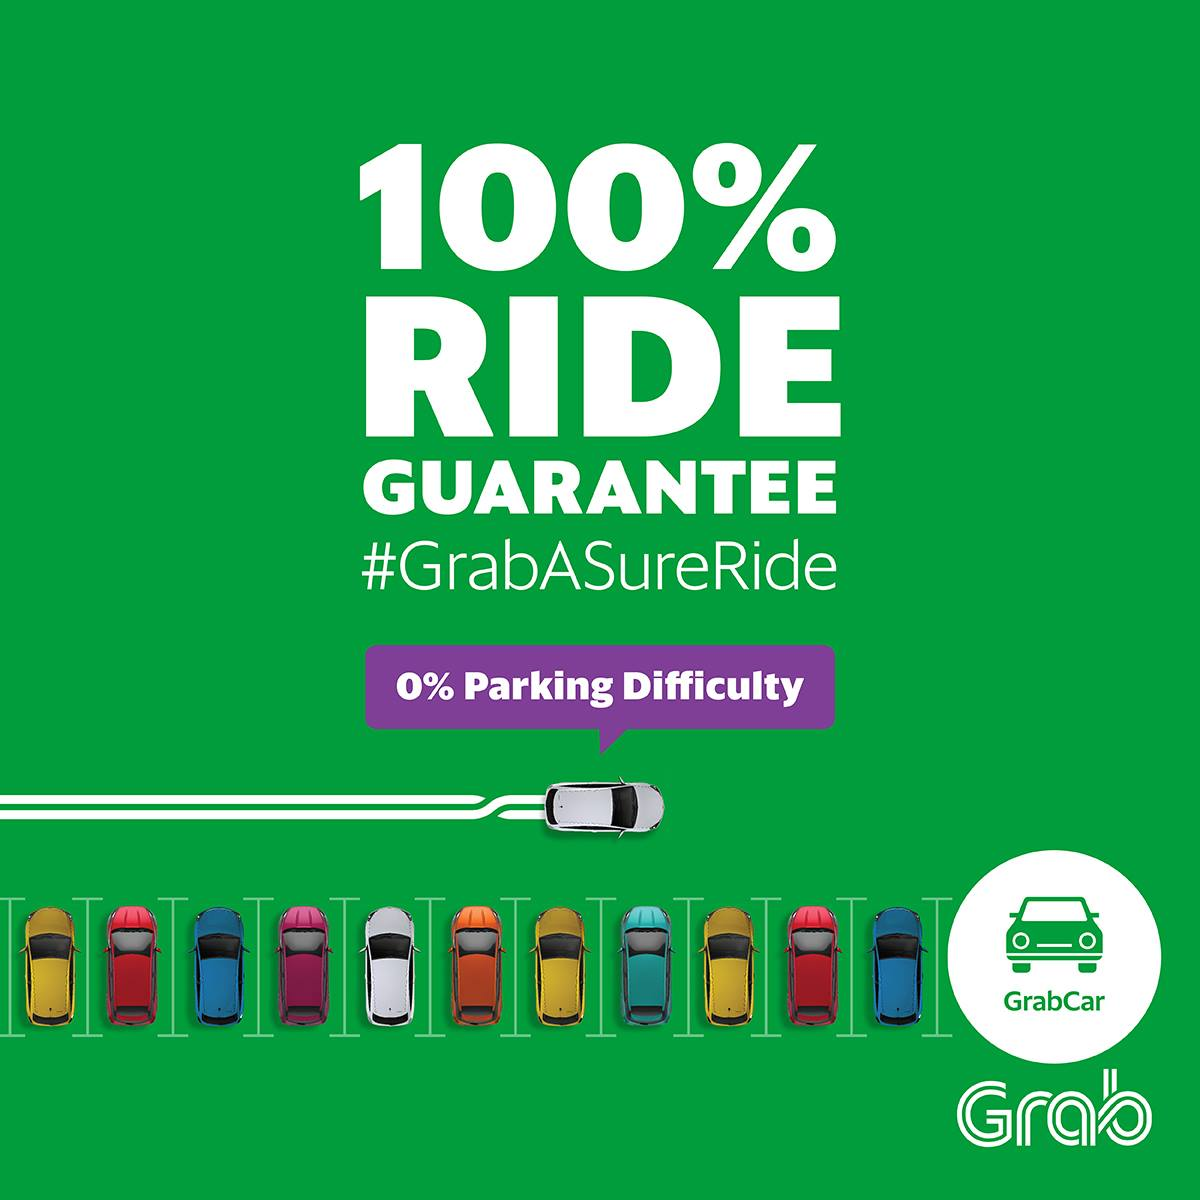 Grab promo code rm6 discount x 10 grabcar grabshare rides 9am 5pm until 22 june 2017